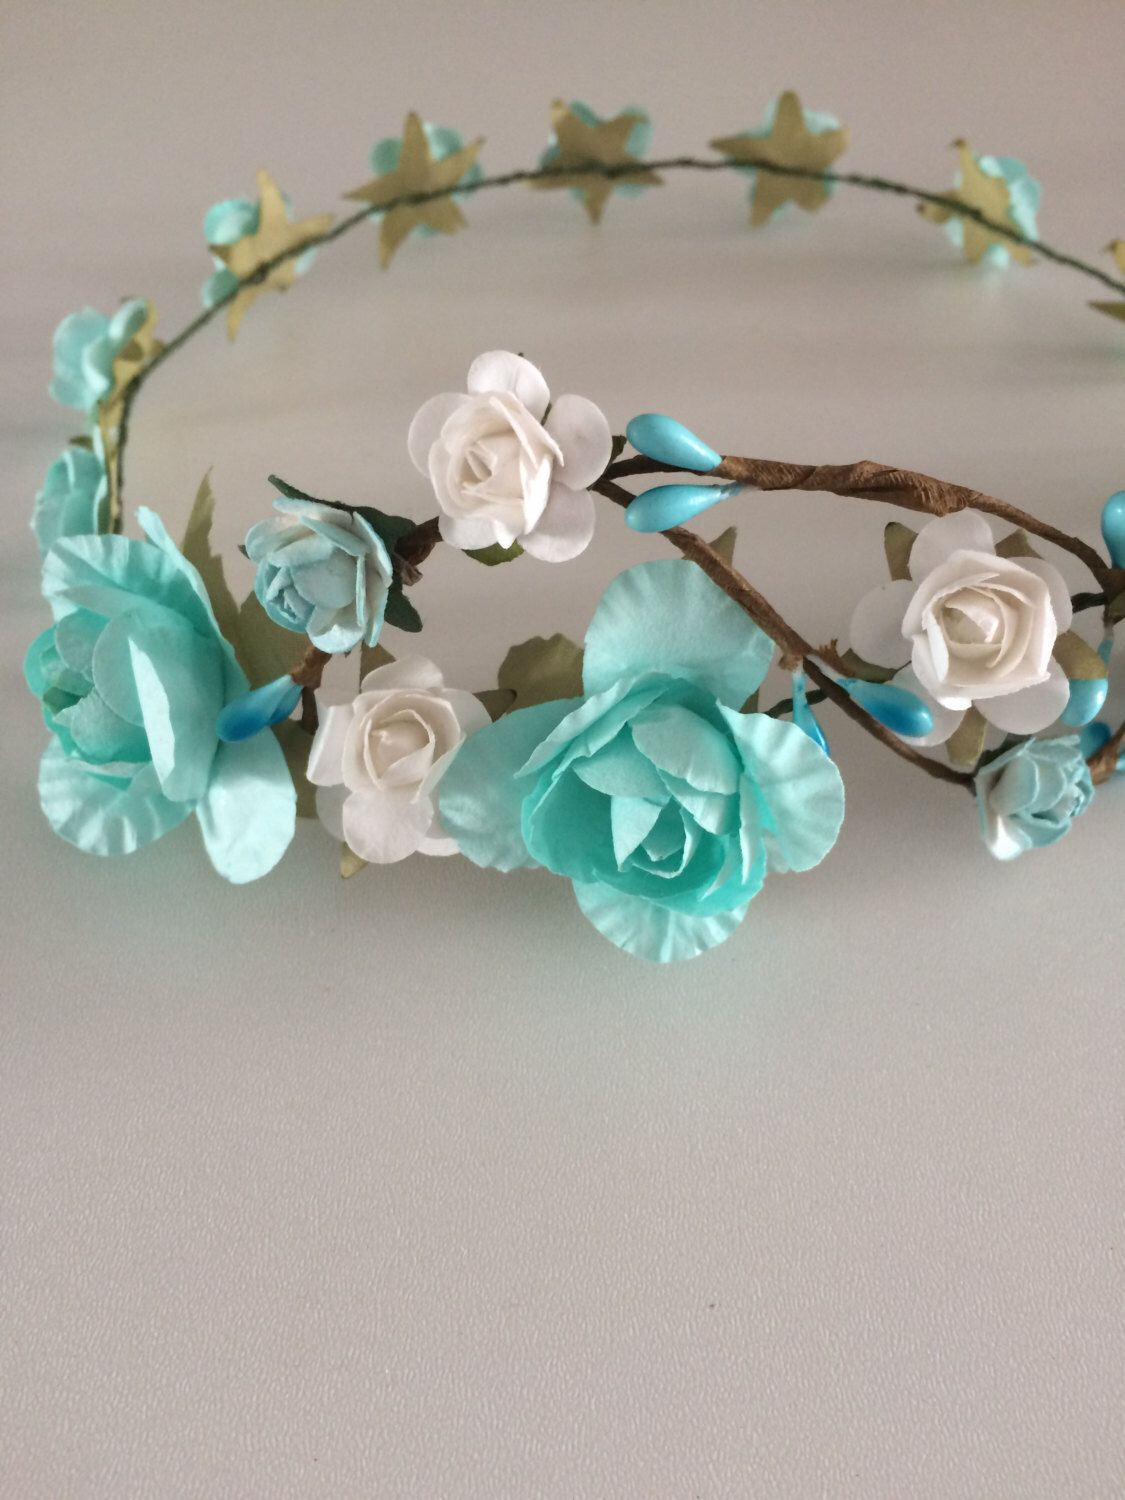 Flower crown rose crown tiffany blue and white rose tiara flower flower crown rose crown tiffany blue and white rose tiara flower girl headband izmirmasajfo Gallery